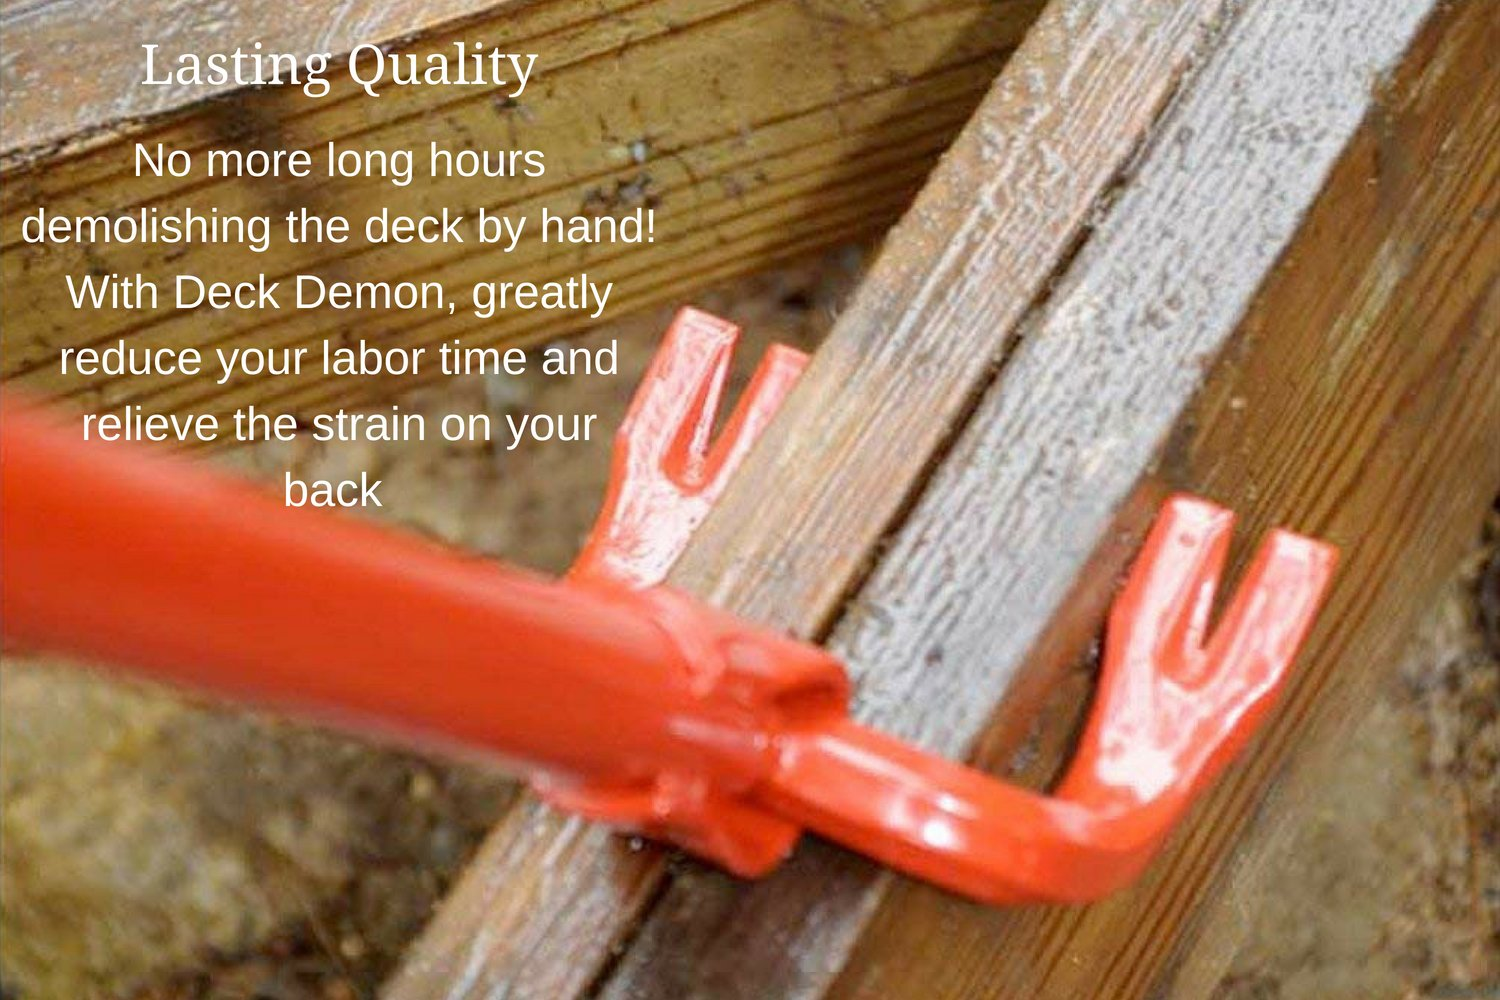 """Wrecking // Demolition Tool Heavy-Duty Steel Pallet Breaker and Deck // Roof // Strapping Remover Angel Guard Deck Demon Dual-Claw Head for Easy Removal DD-201 Extra-Long 44/"""" Cushion-Grip Handle"""